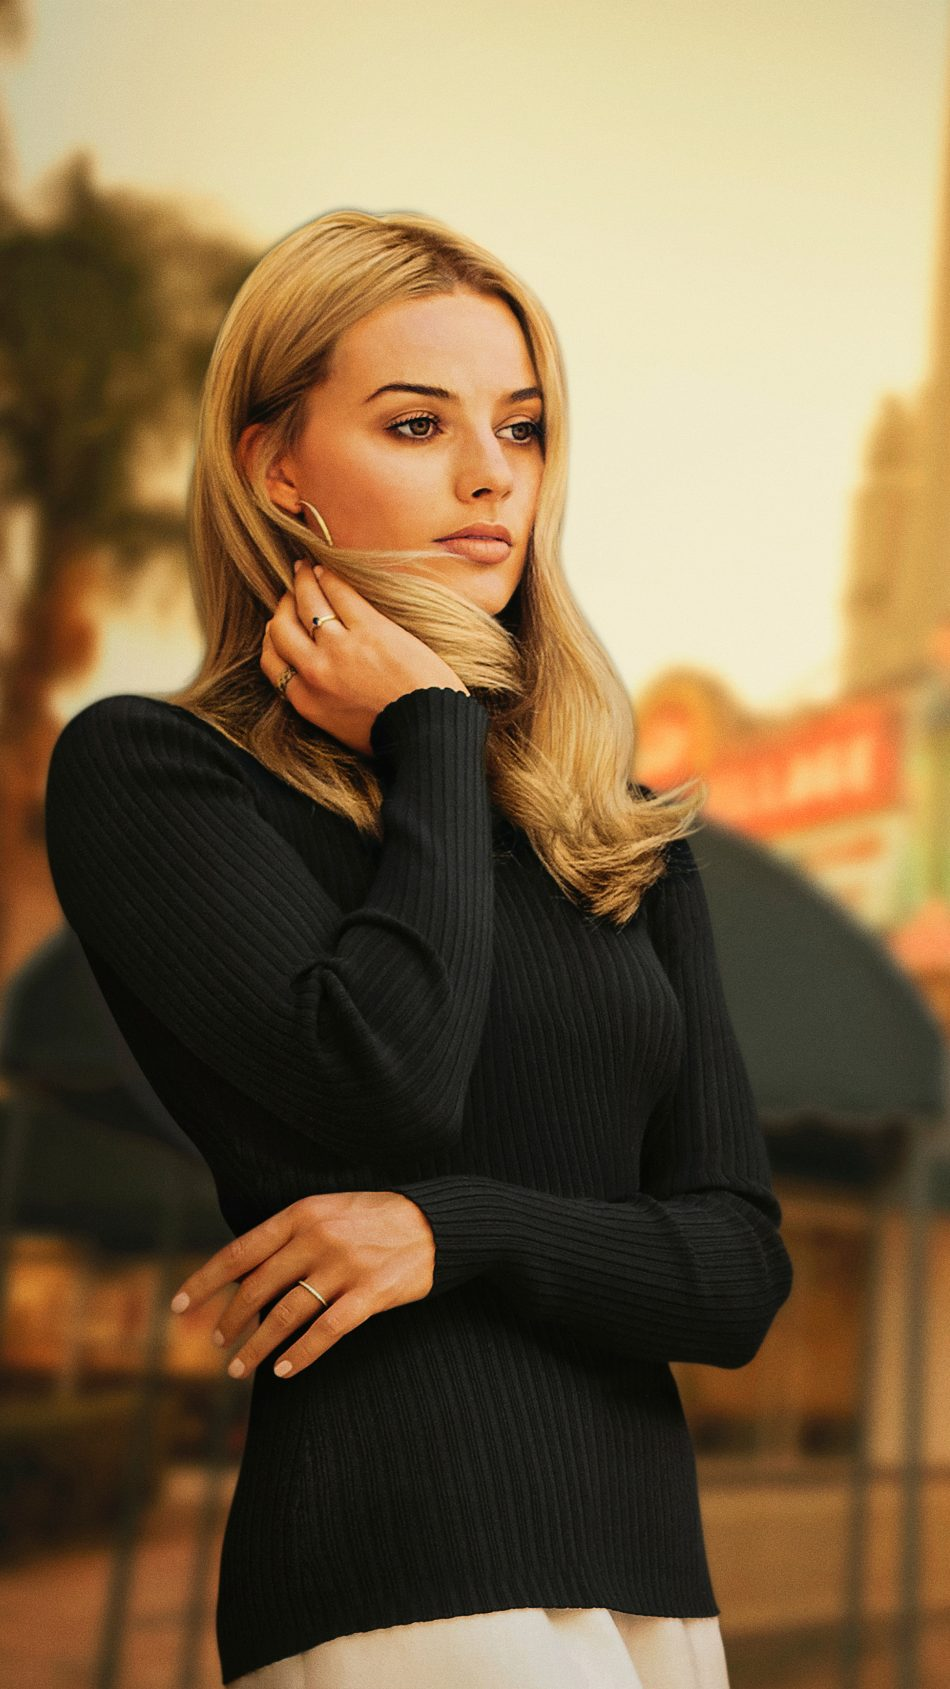 Download Margot Robbie Once Upon a Time in Hollywood 2019 Free Pure